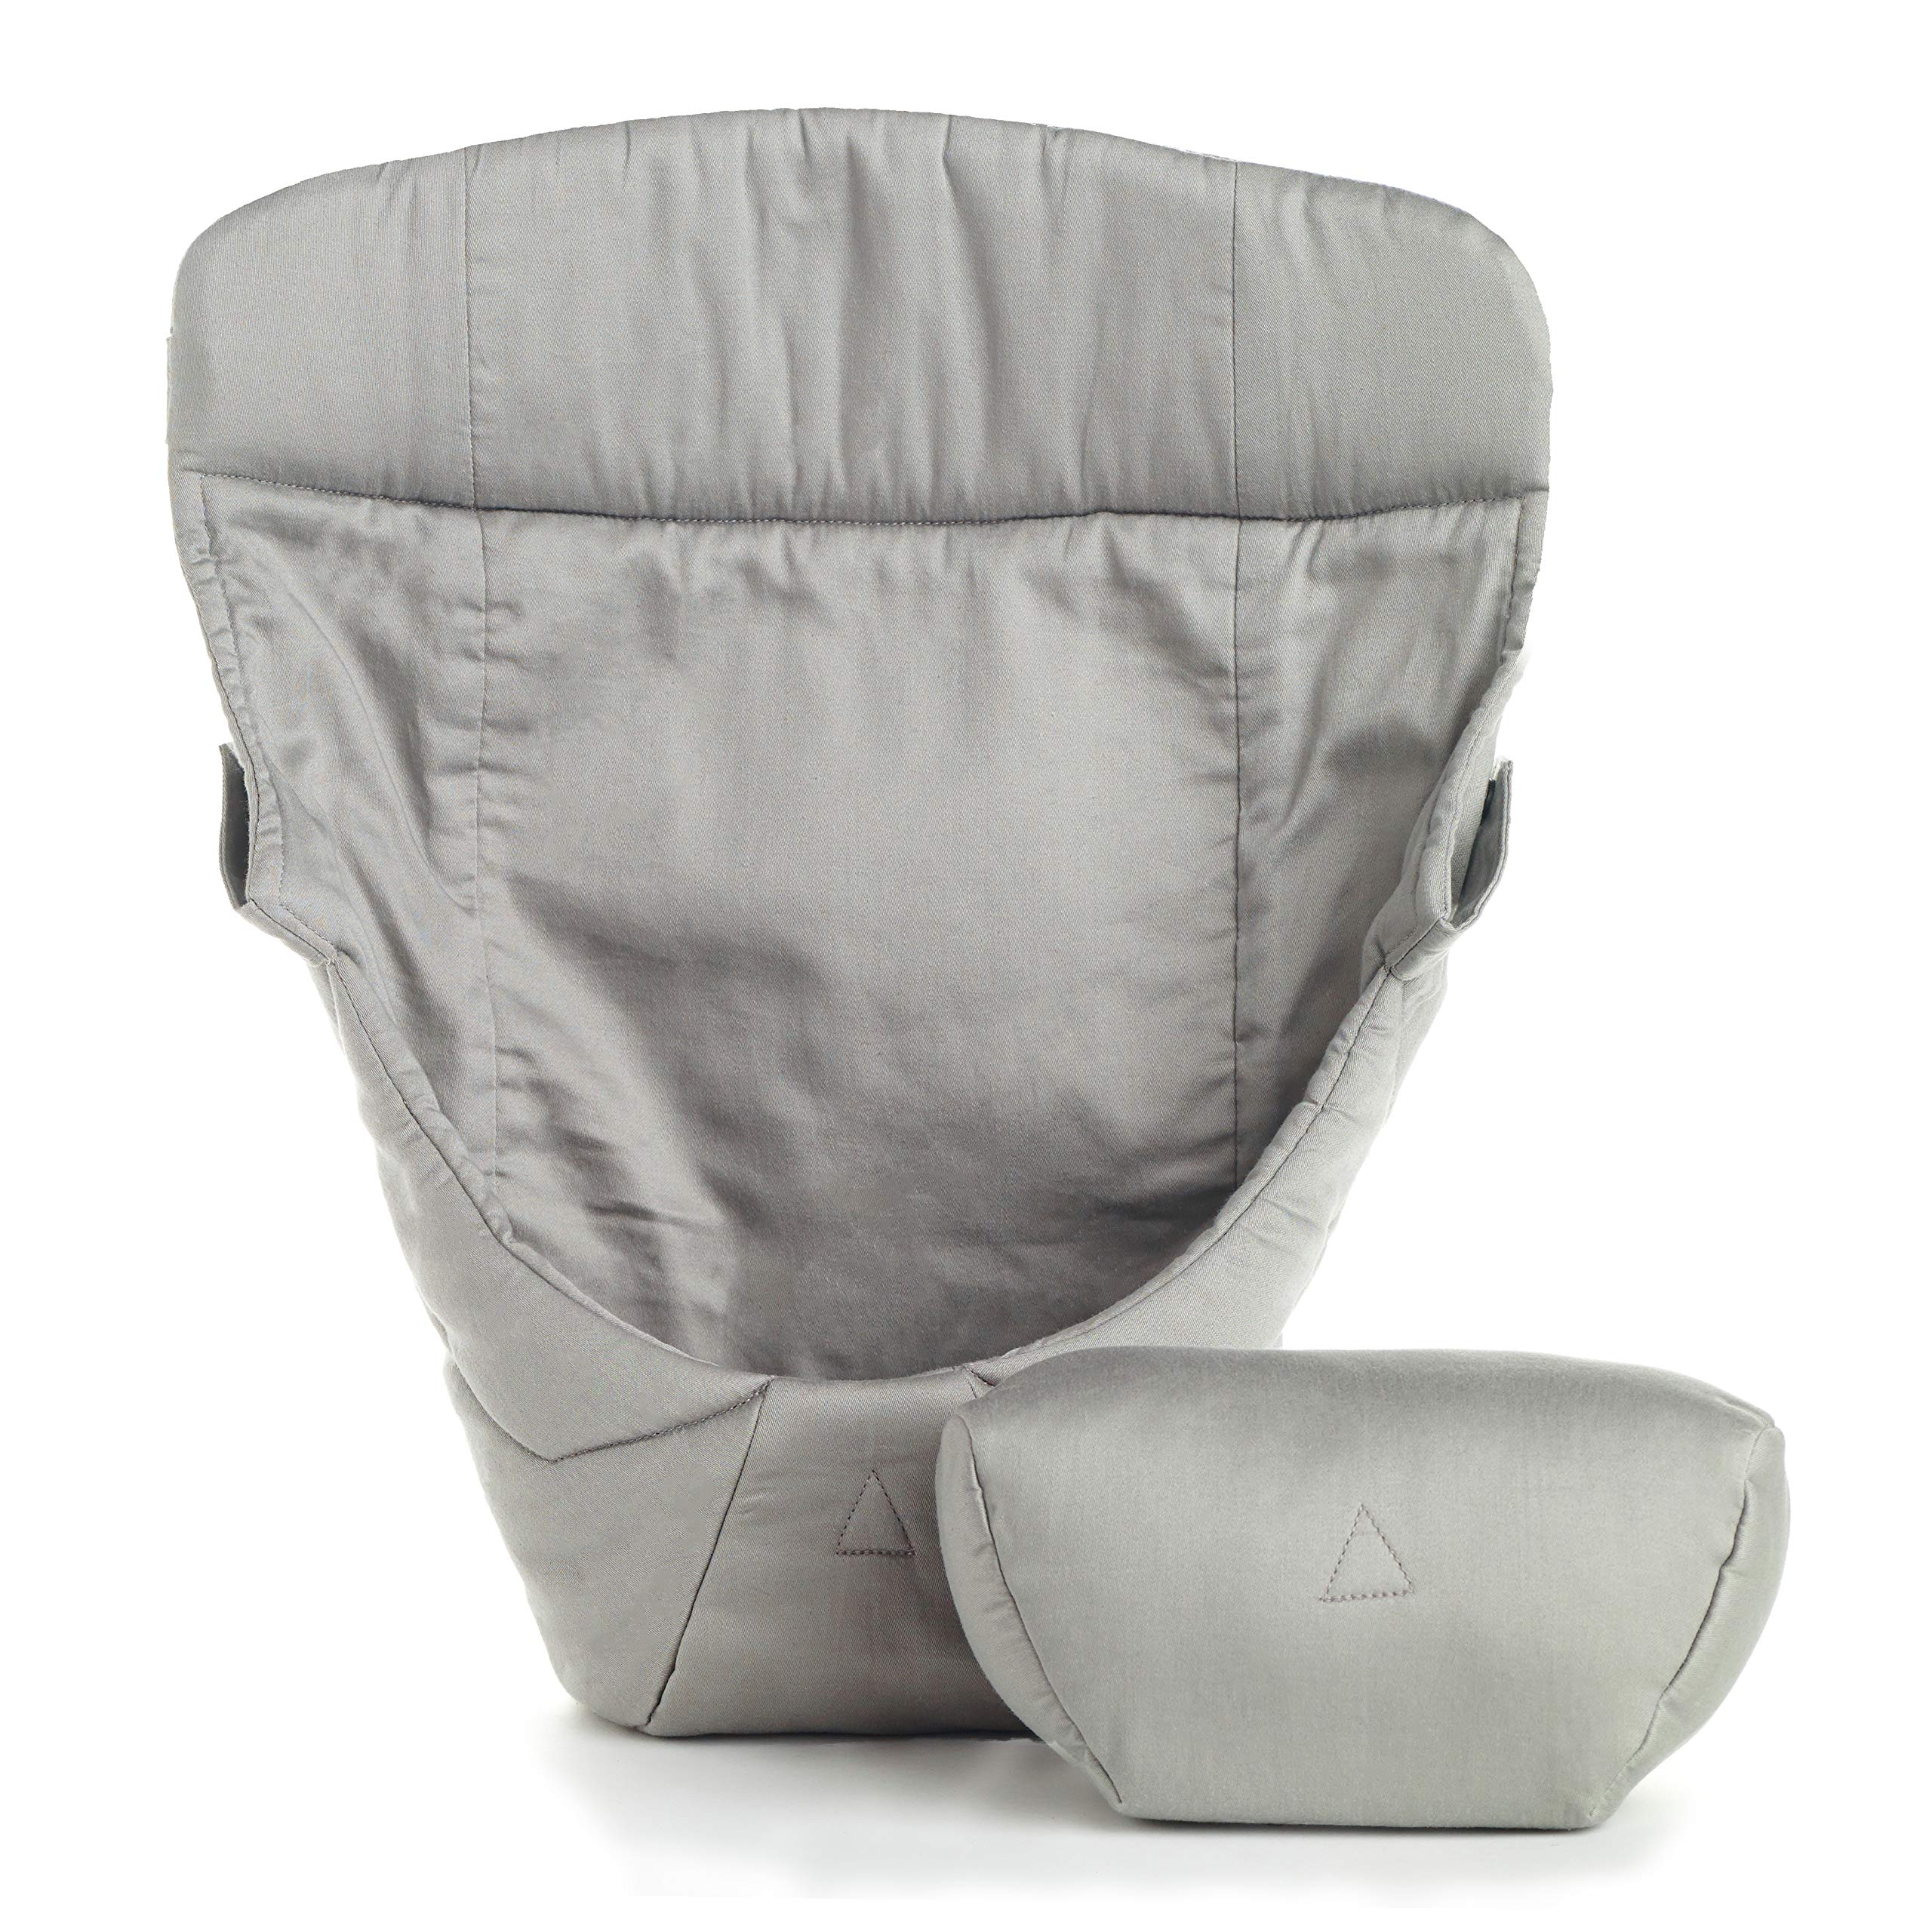 Ergobaby Easy Snug Original - Cojín para bebé, color gris product image